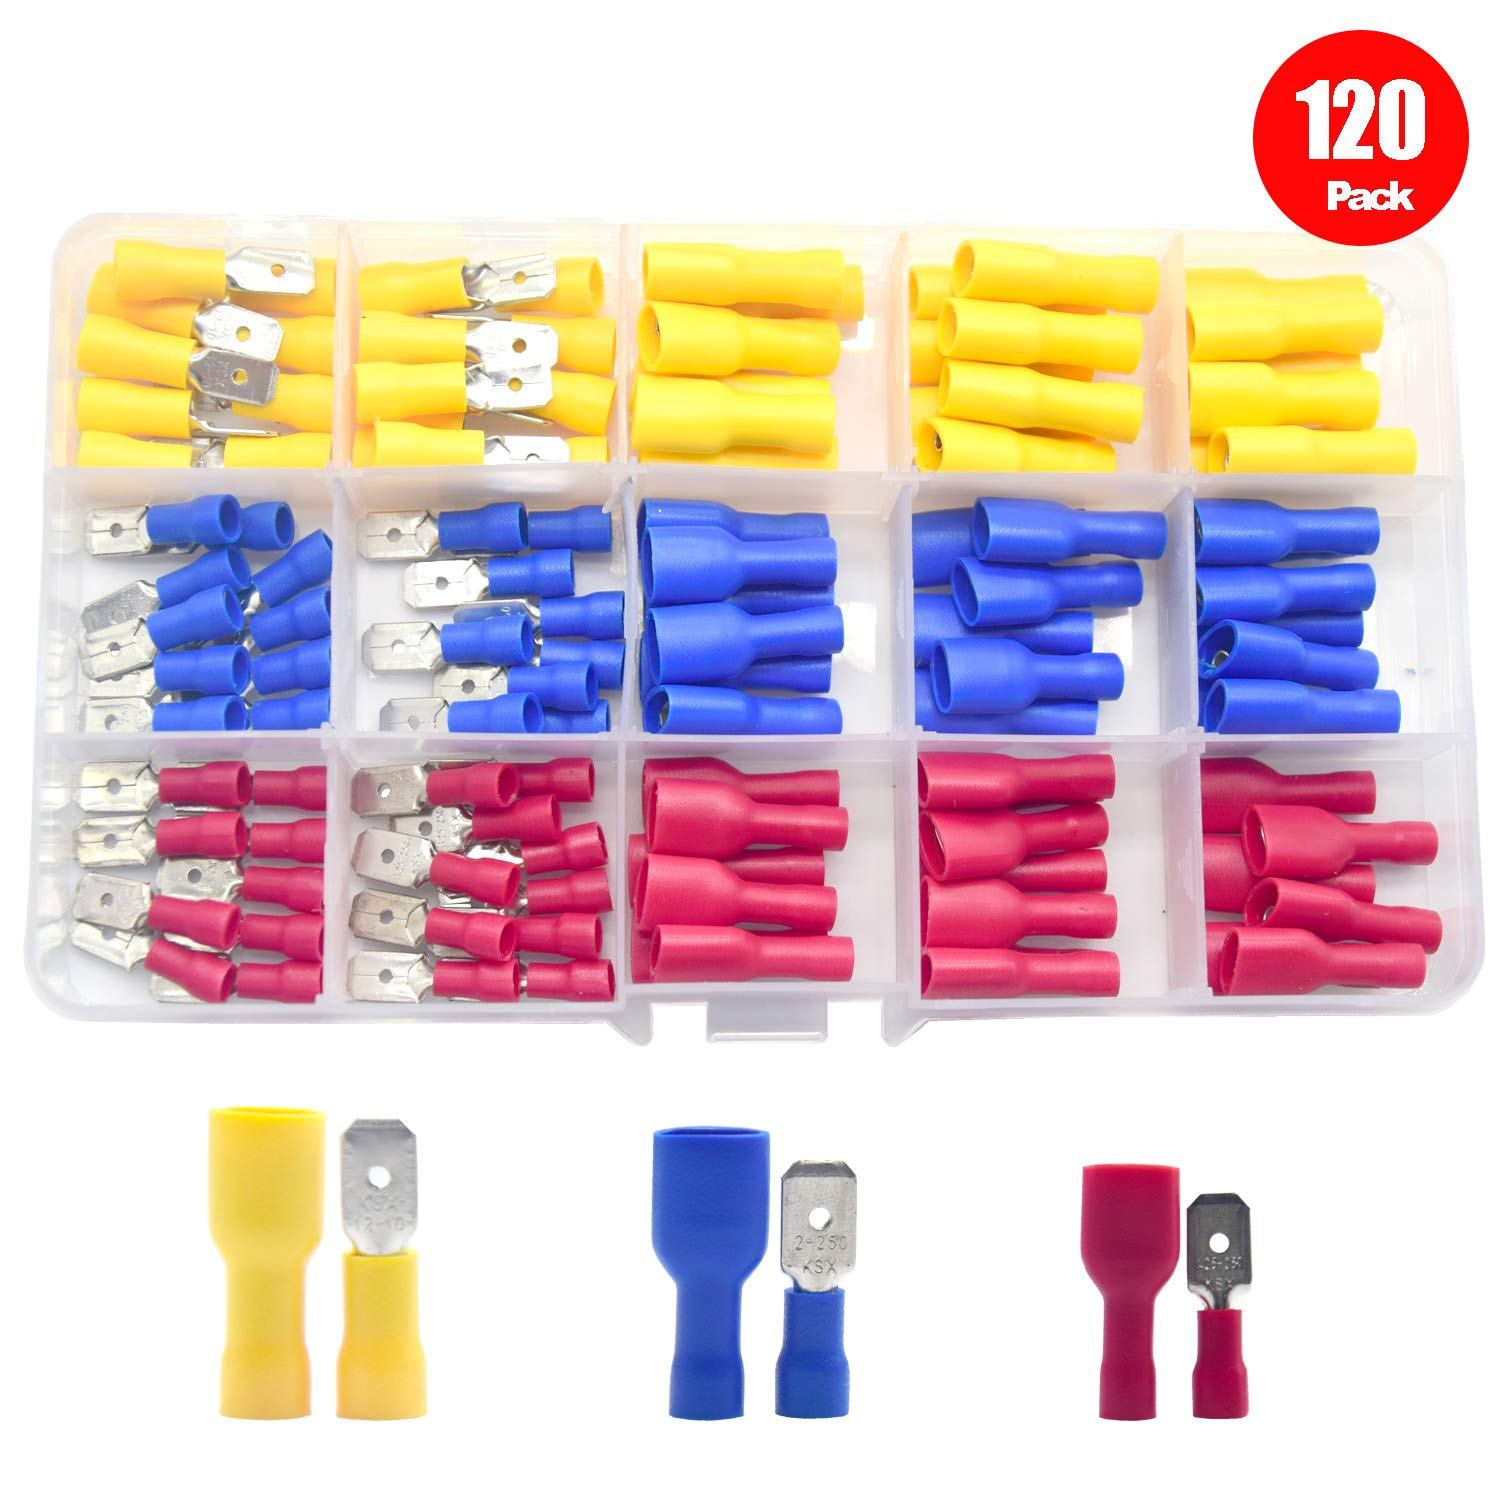 Yosawo 120 Pieces AWG 22-16 16-14 12-10 PVC Fully Insulated Male//Female Spade Quick Disconnect Electrical Insulated Crimp Terminals Connectors Set PVCGM